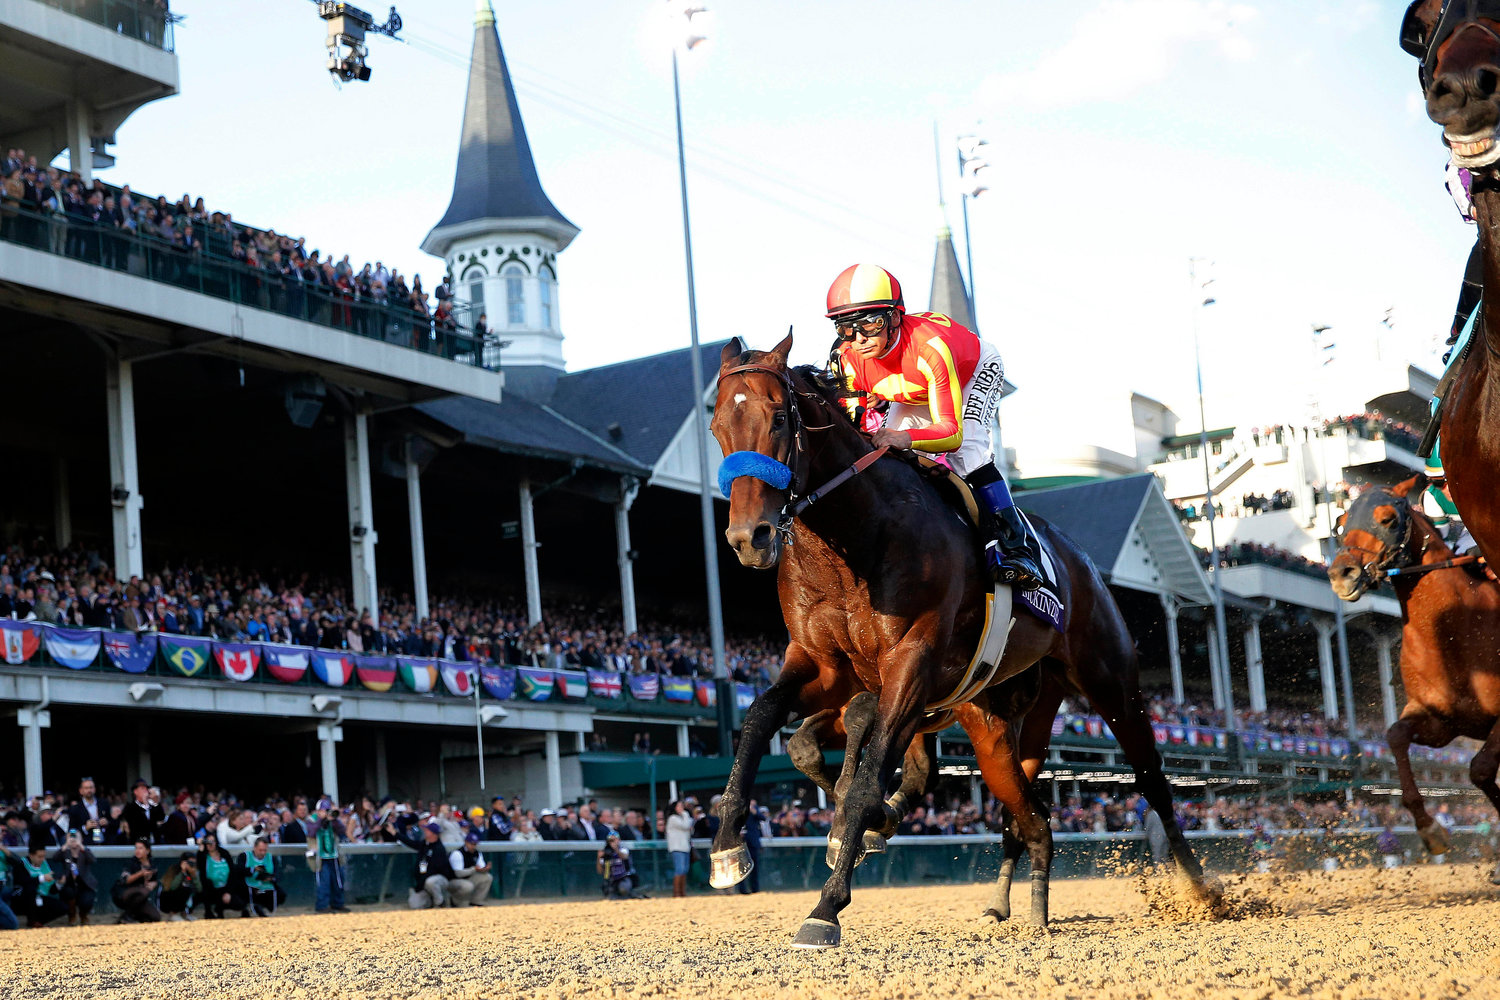 Jockey Mike Smith aboard McKinzie (6) runs down the front stretch during the 35th Breeders Cup world championships at Churchill Downs in Louisville, Ky., Nov 3, 2018. Smith, a Catholic, who will race in the Kentucky Derby May 4, prays before every race, but he doesn't pray to win.